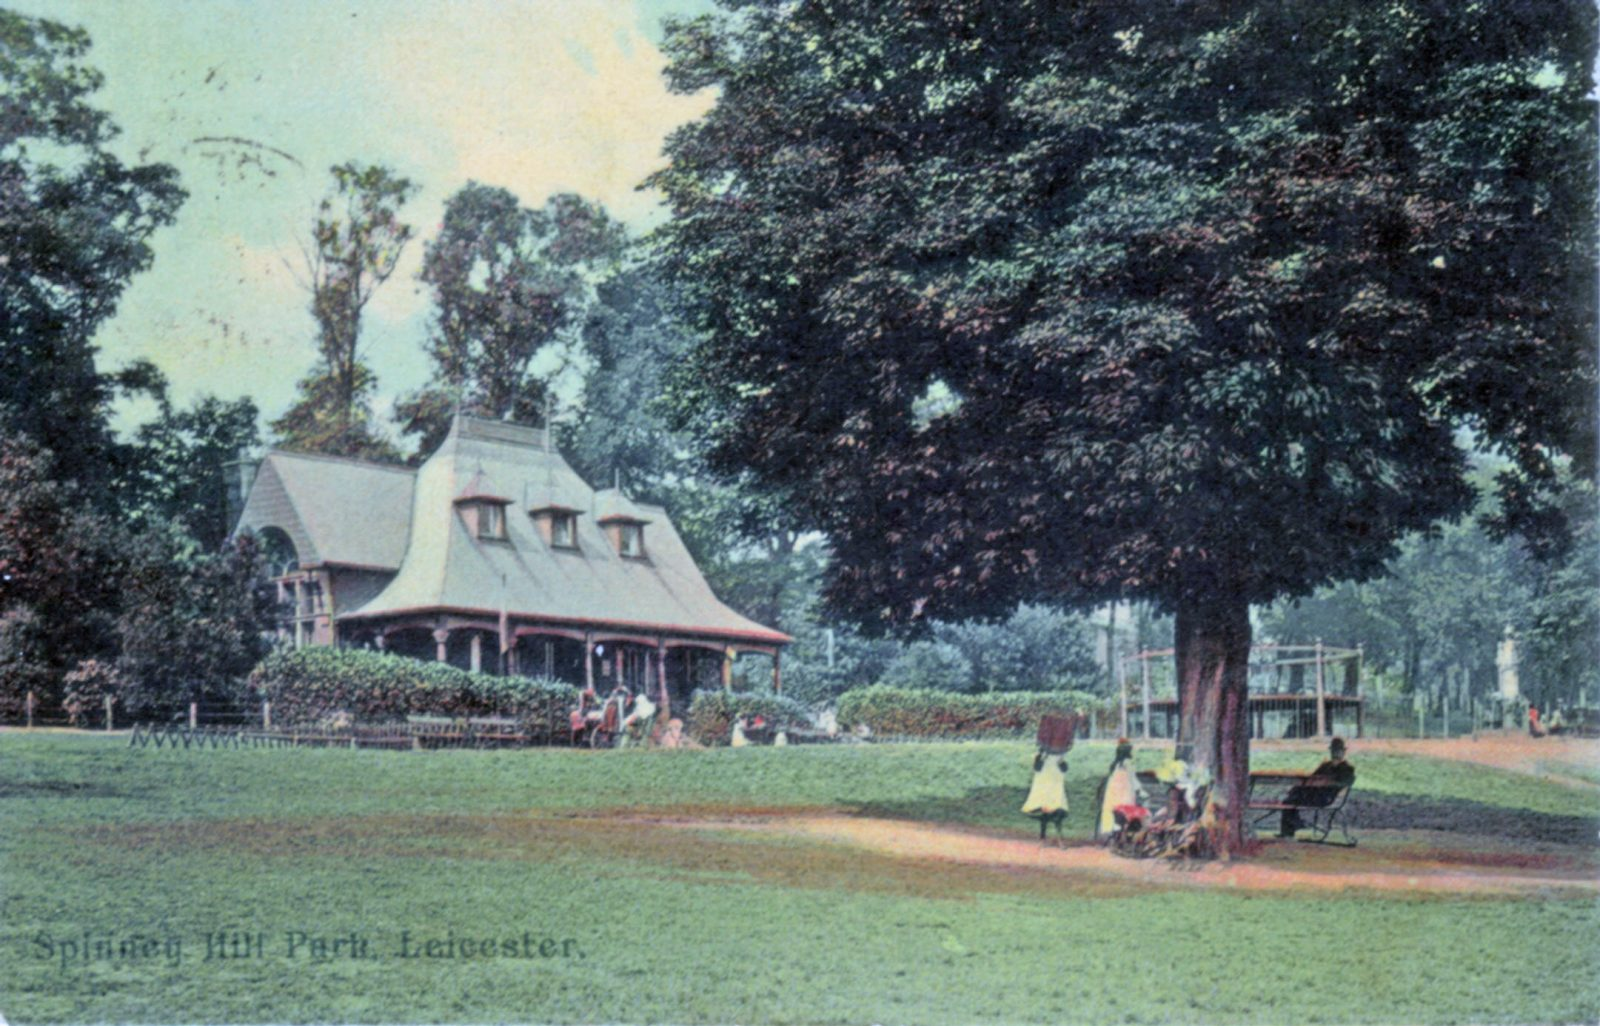 Spinney Hill Park, Leicester. 1901-1920: The Pavilion with children under a tree in the foreground. Franked 1905 (File:1054)